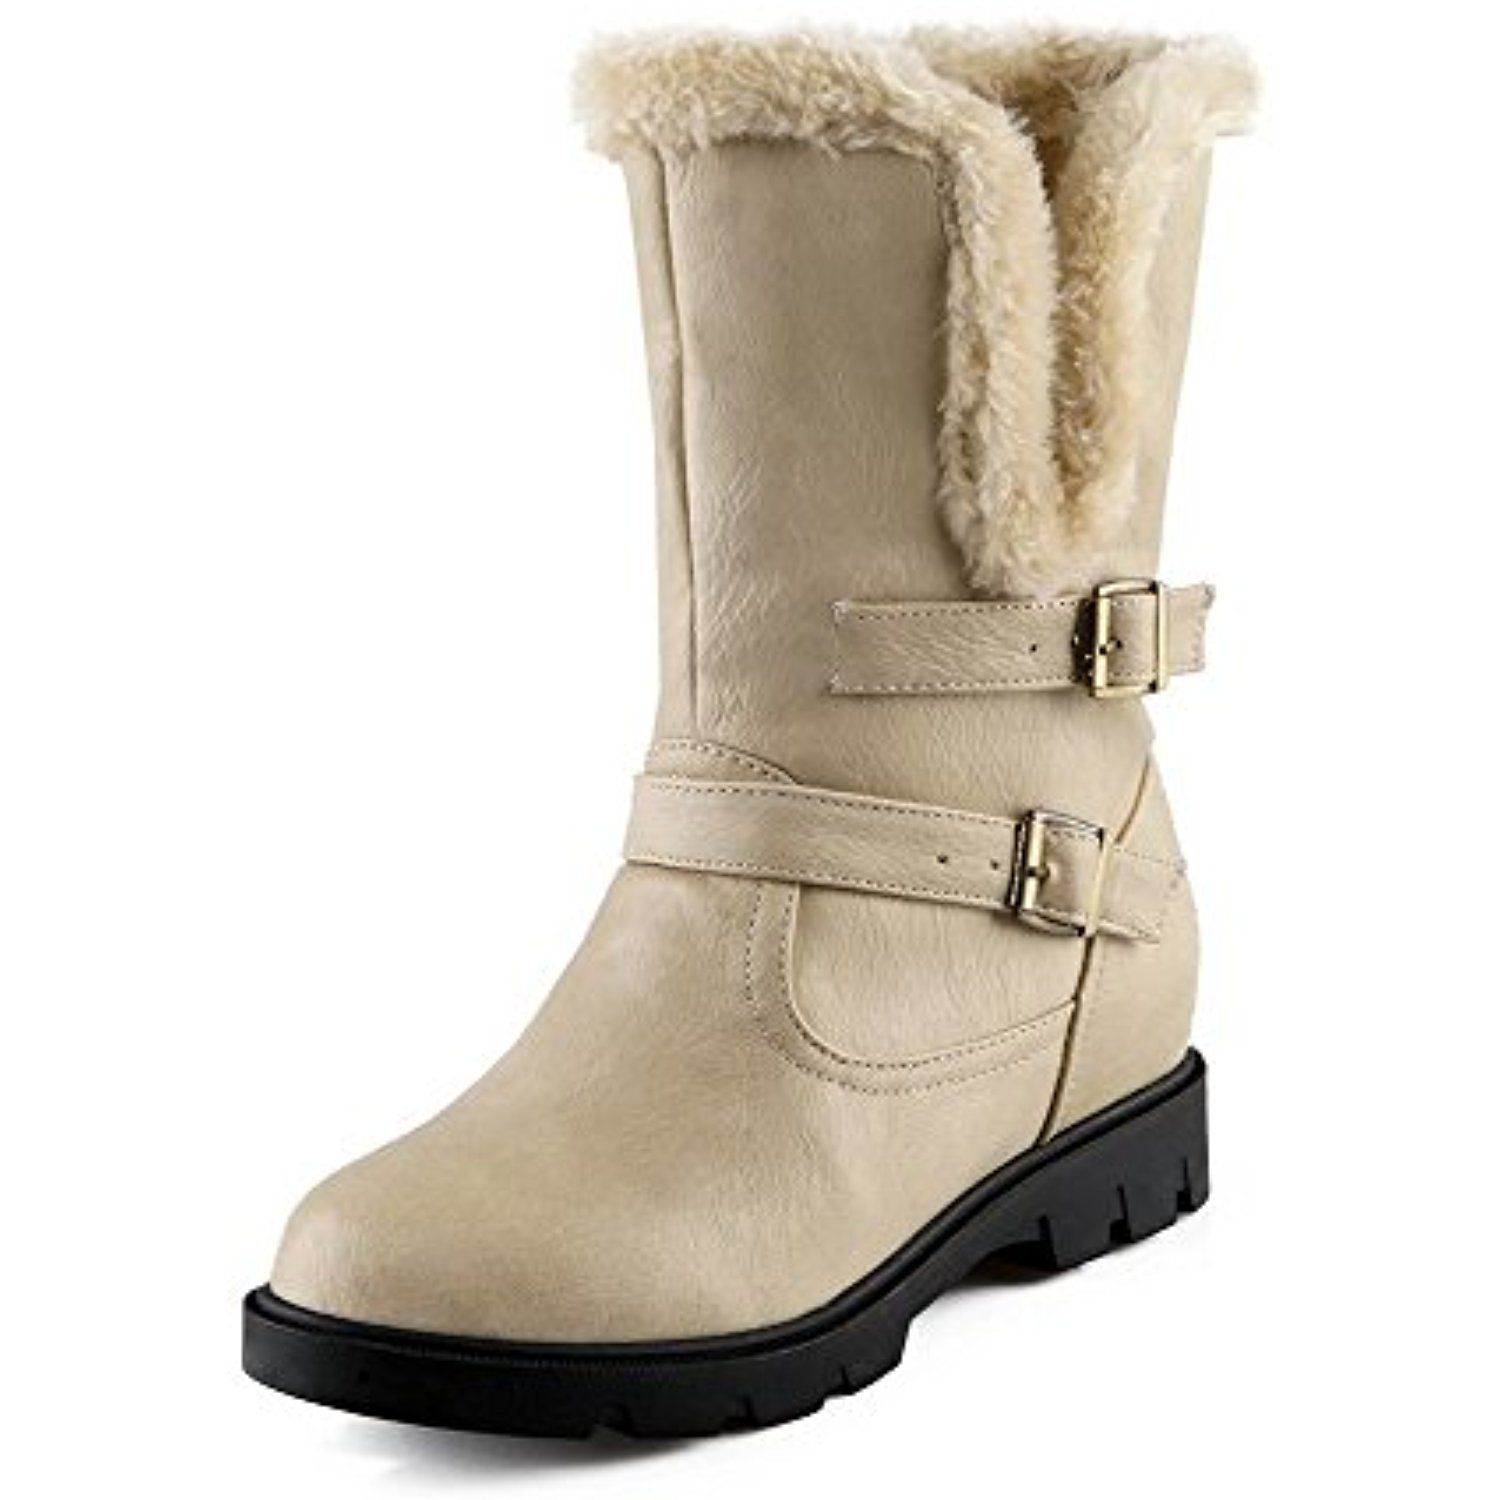 Women's Low-top Pull-on Soft Material Kitten-Heels Round Closed Toe Boots